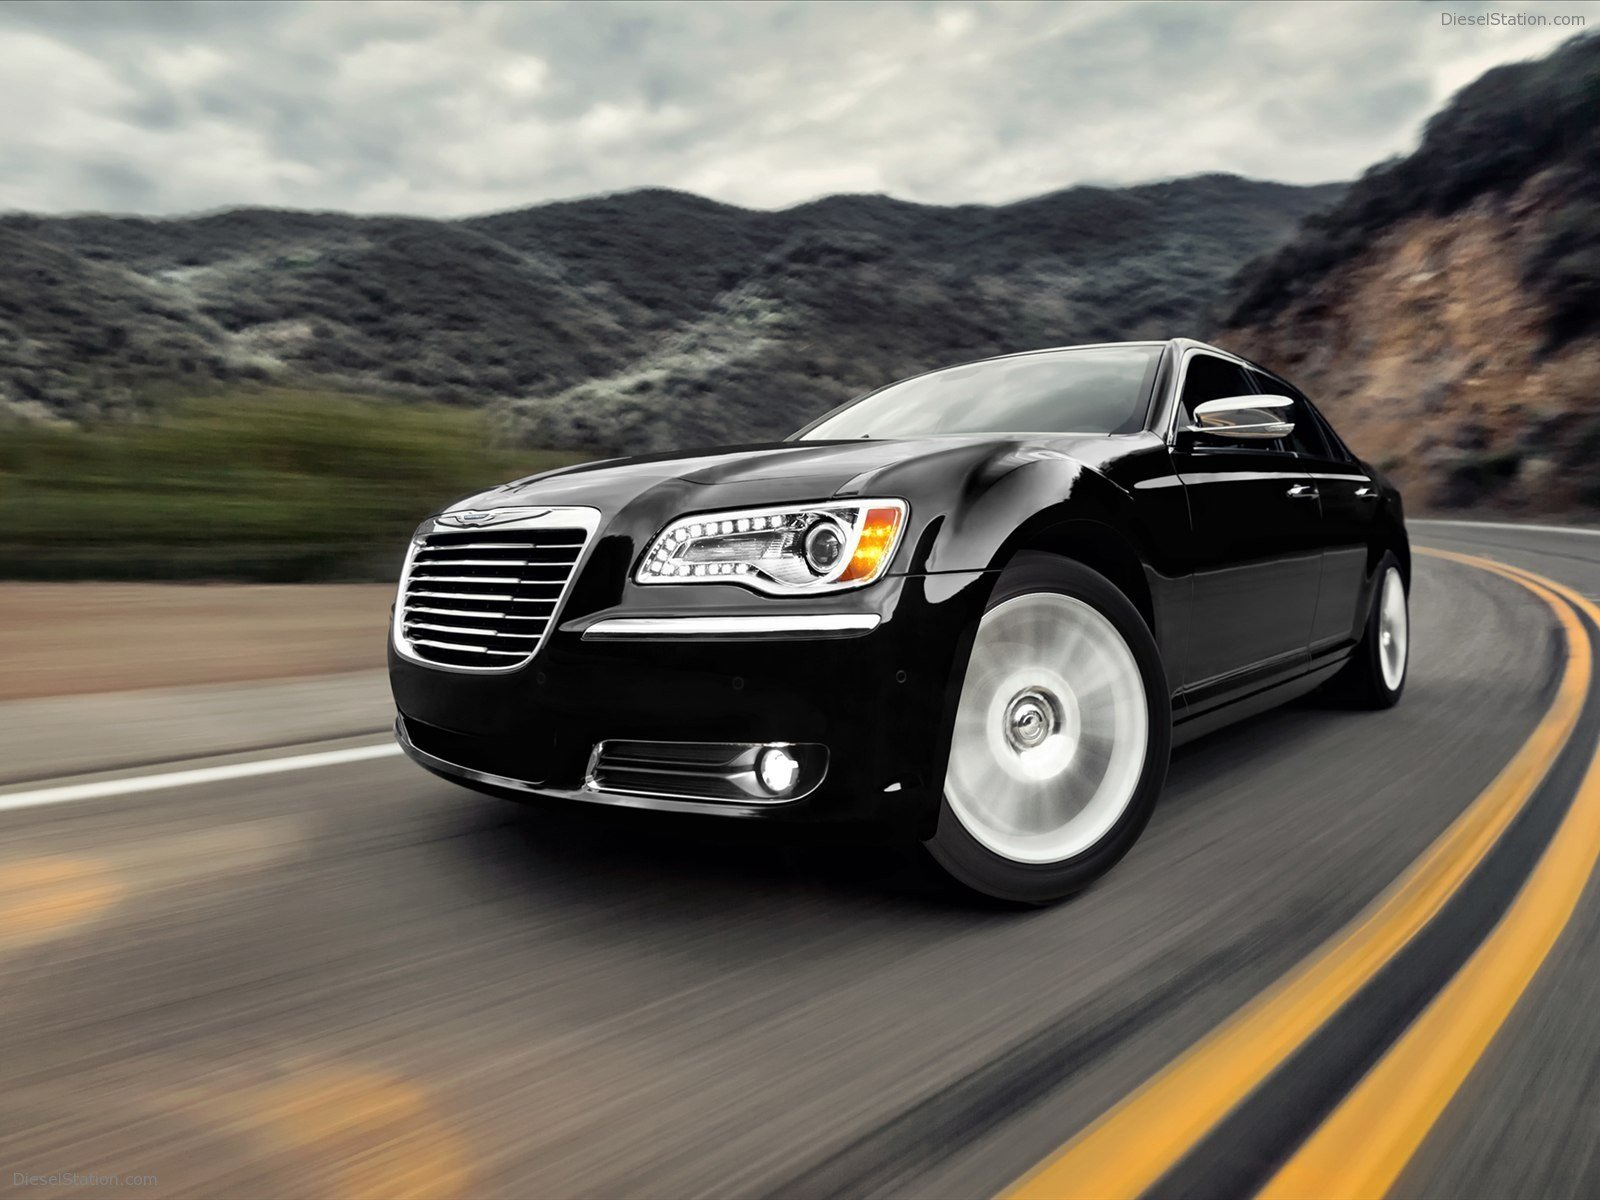 Latest Chrysler 300 2012 Exotic Car Picture 01 Of 28 Diesel Free Download